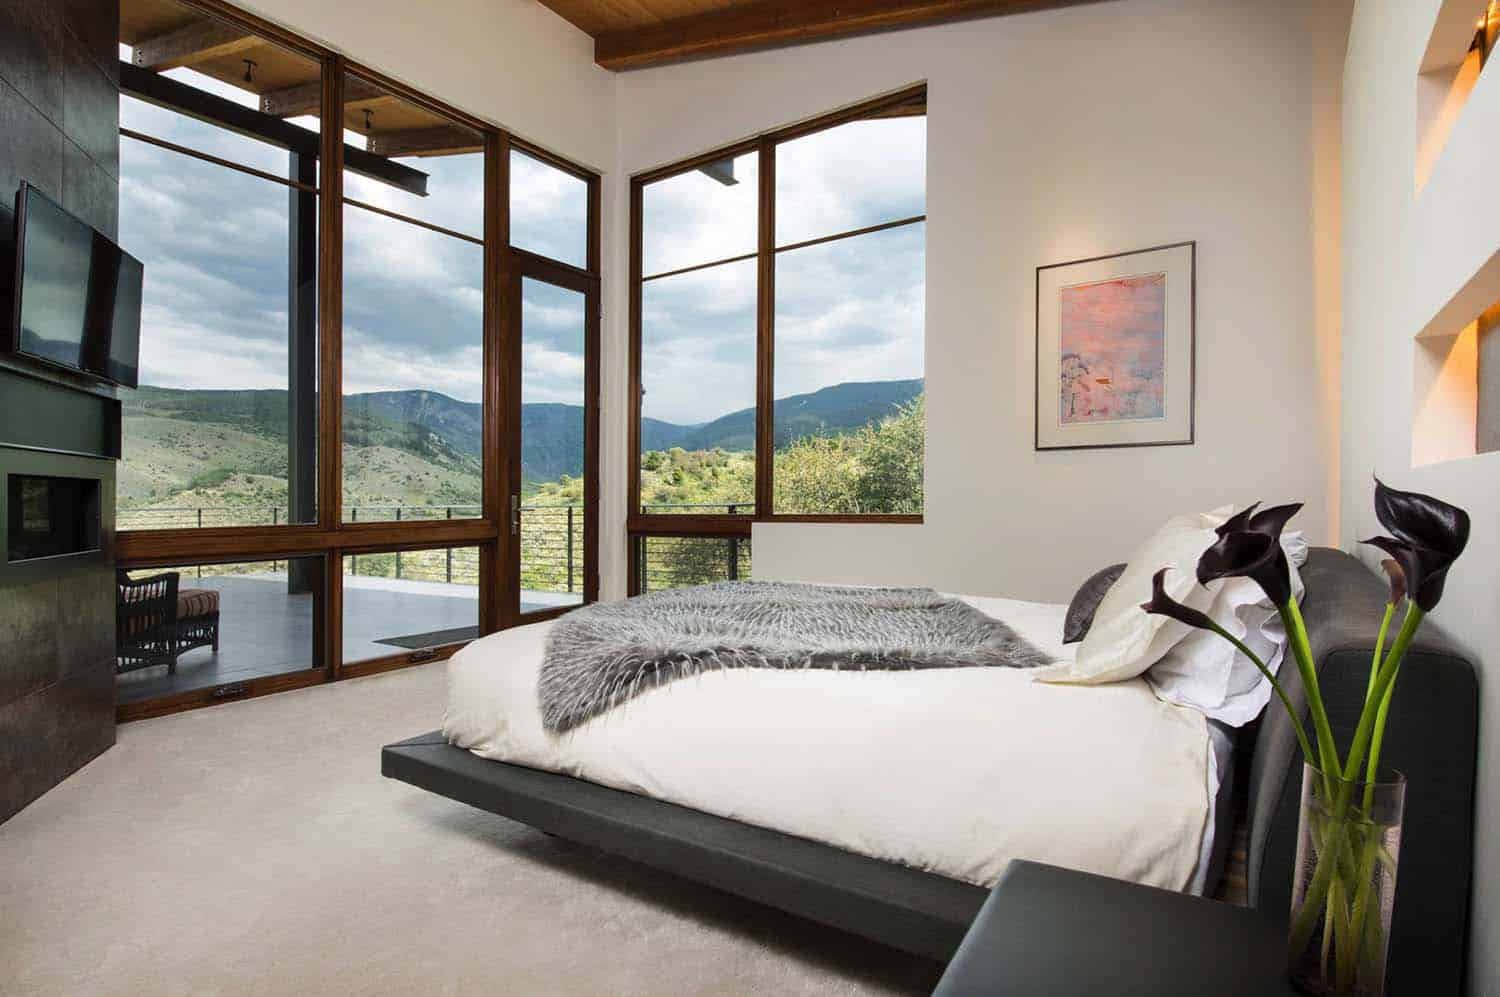 Contemporary Mountain Home Renovation-Berglund Architects-14-1 Kindesign